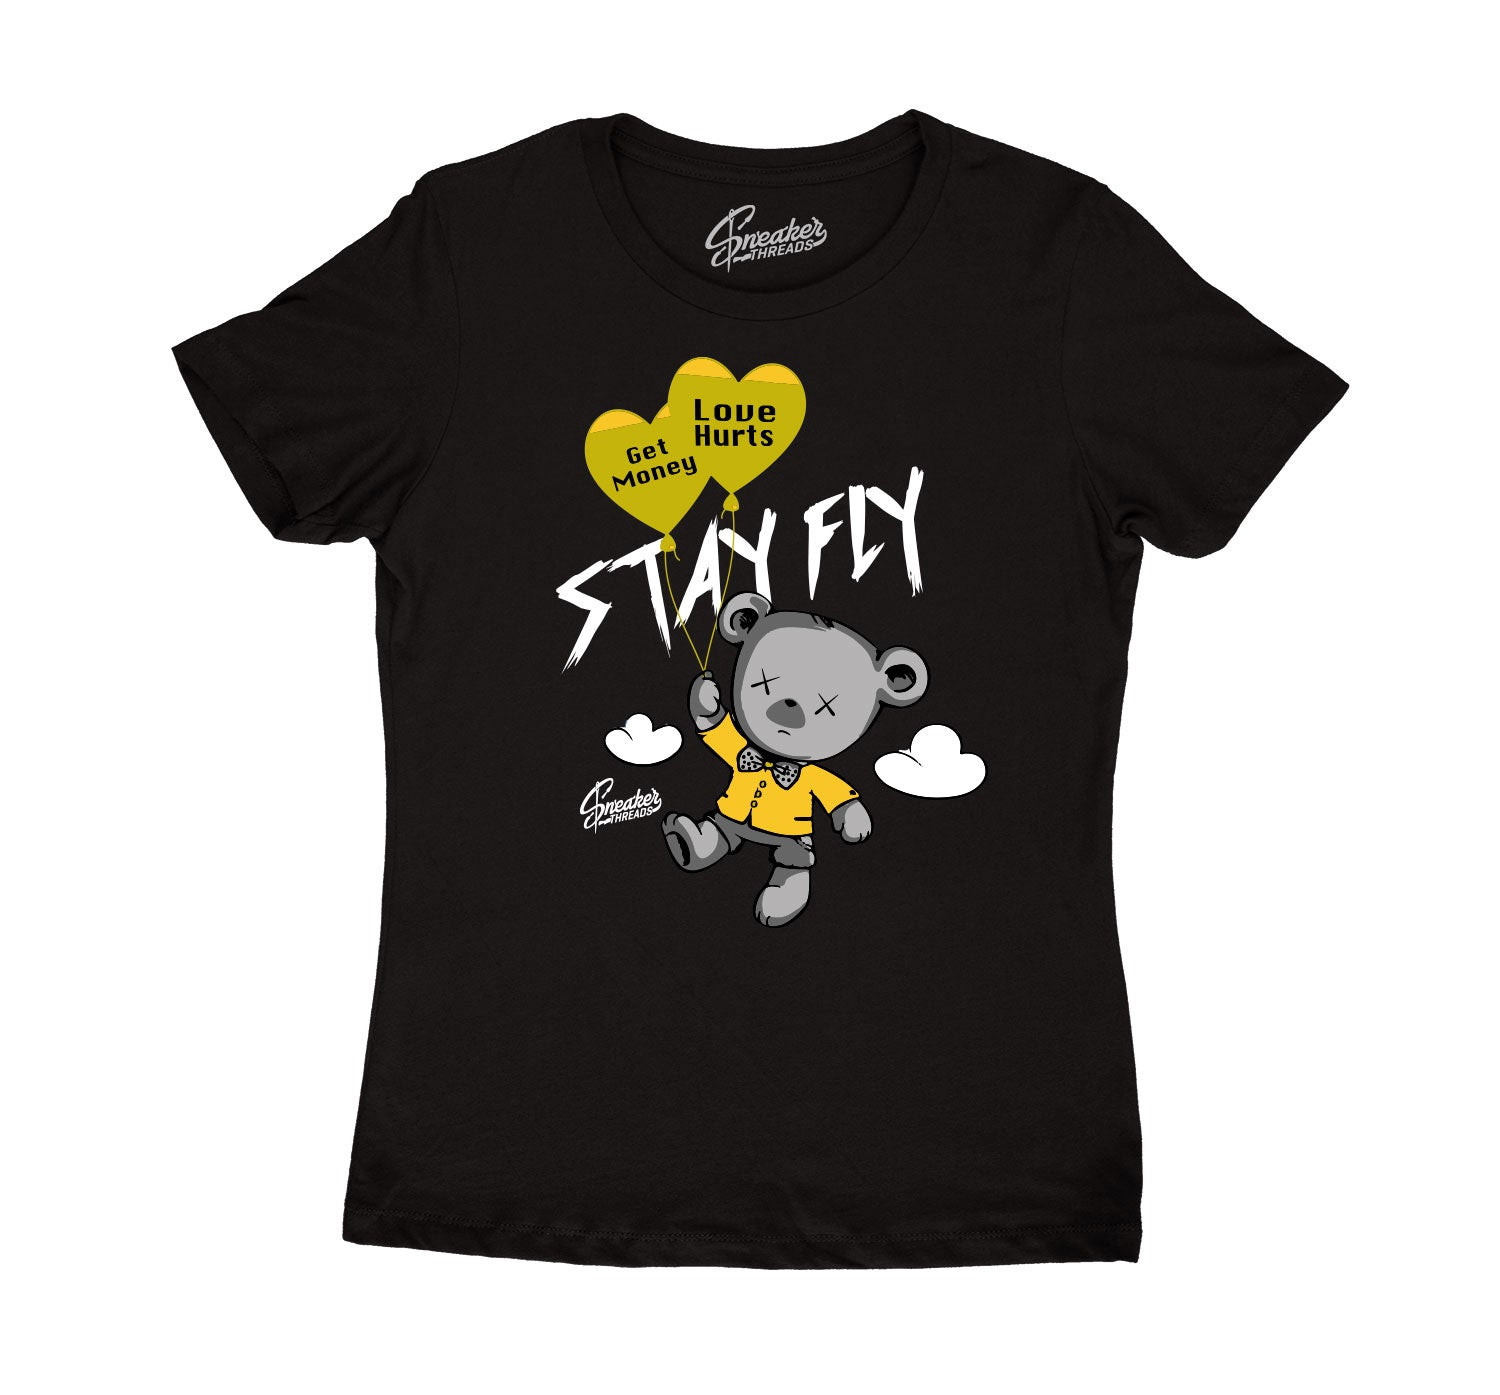 Womens University Gold 9 Shirt - Money Over Love - Black